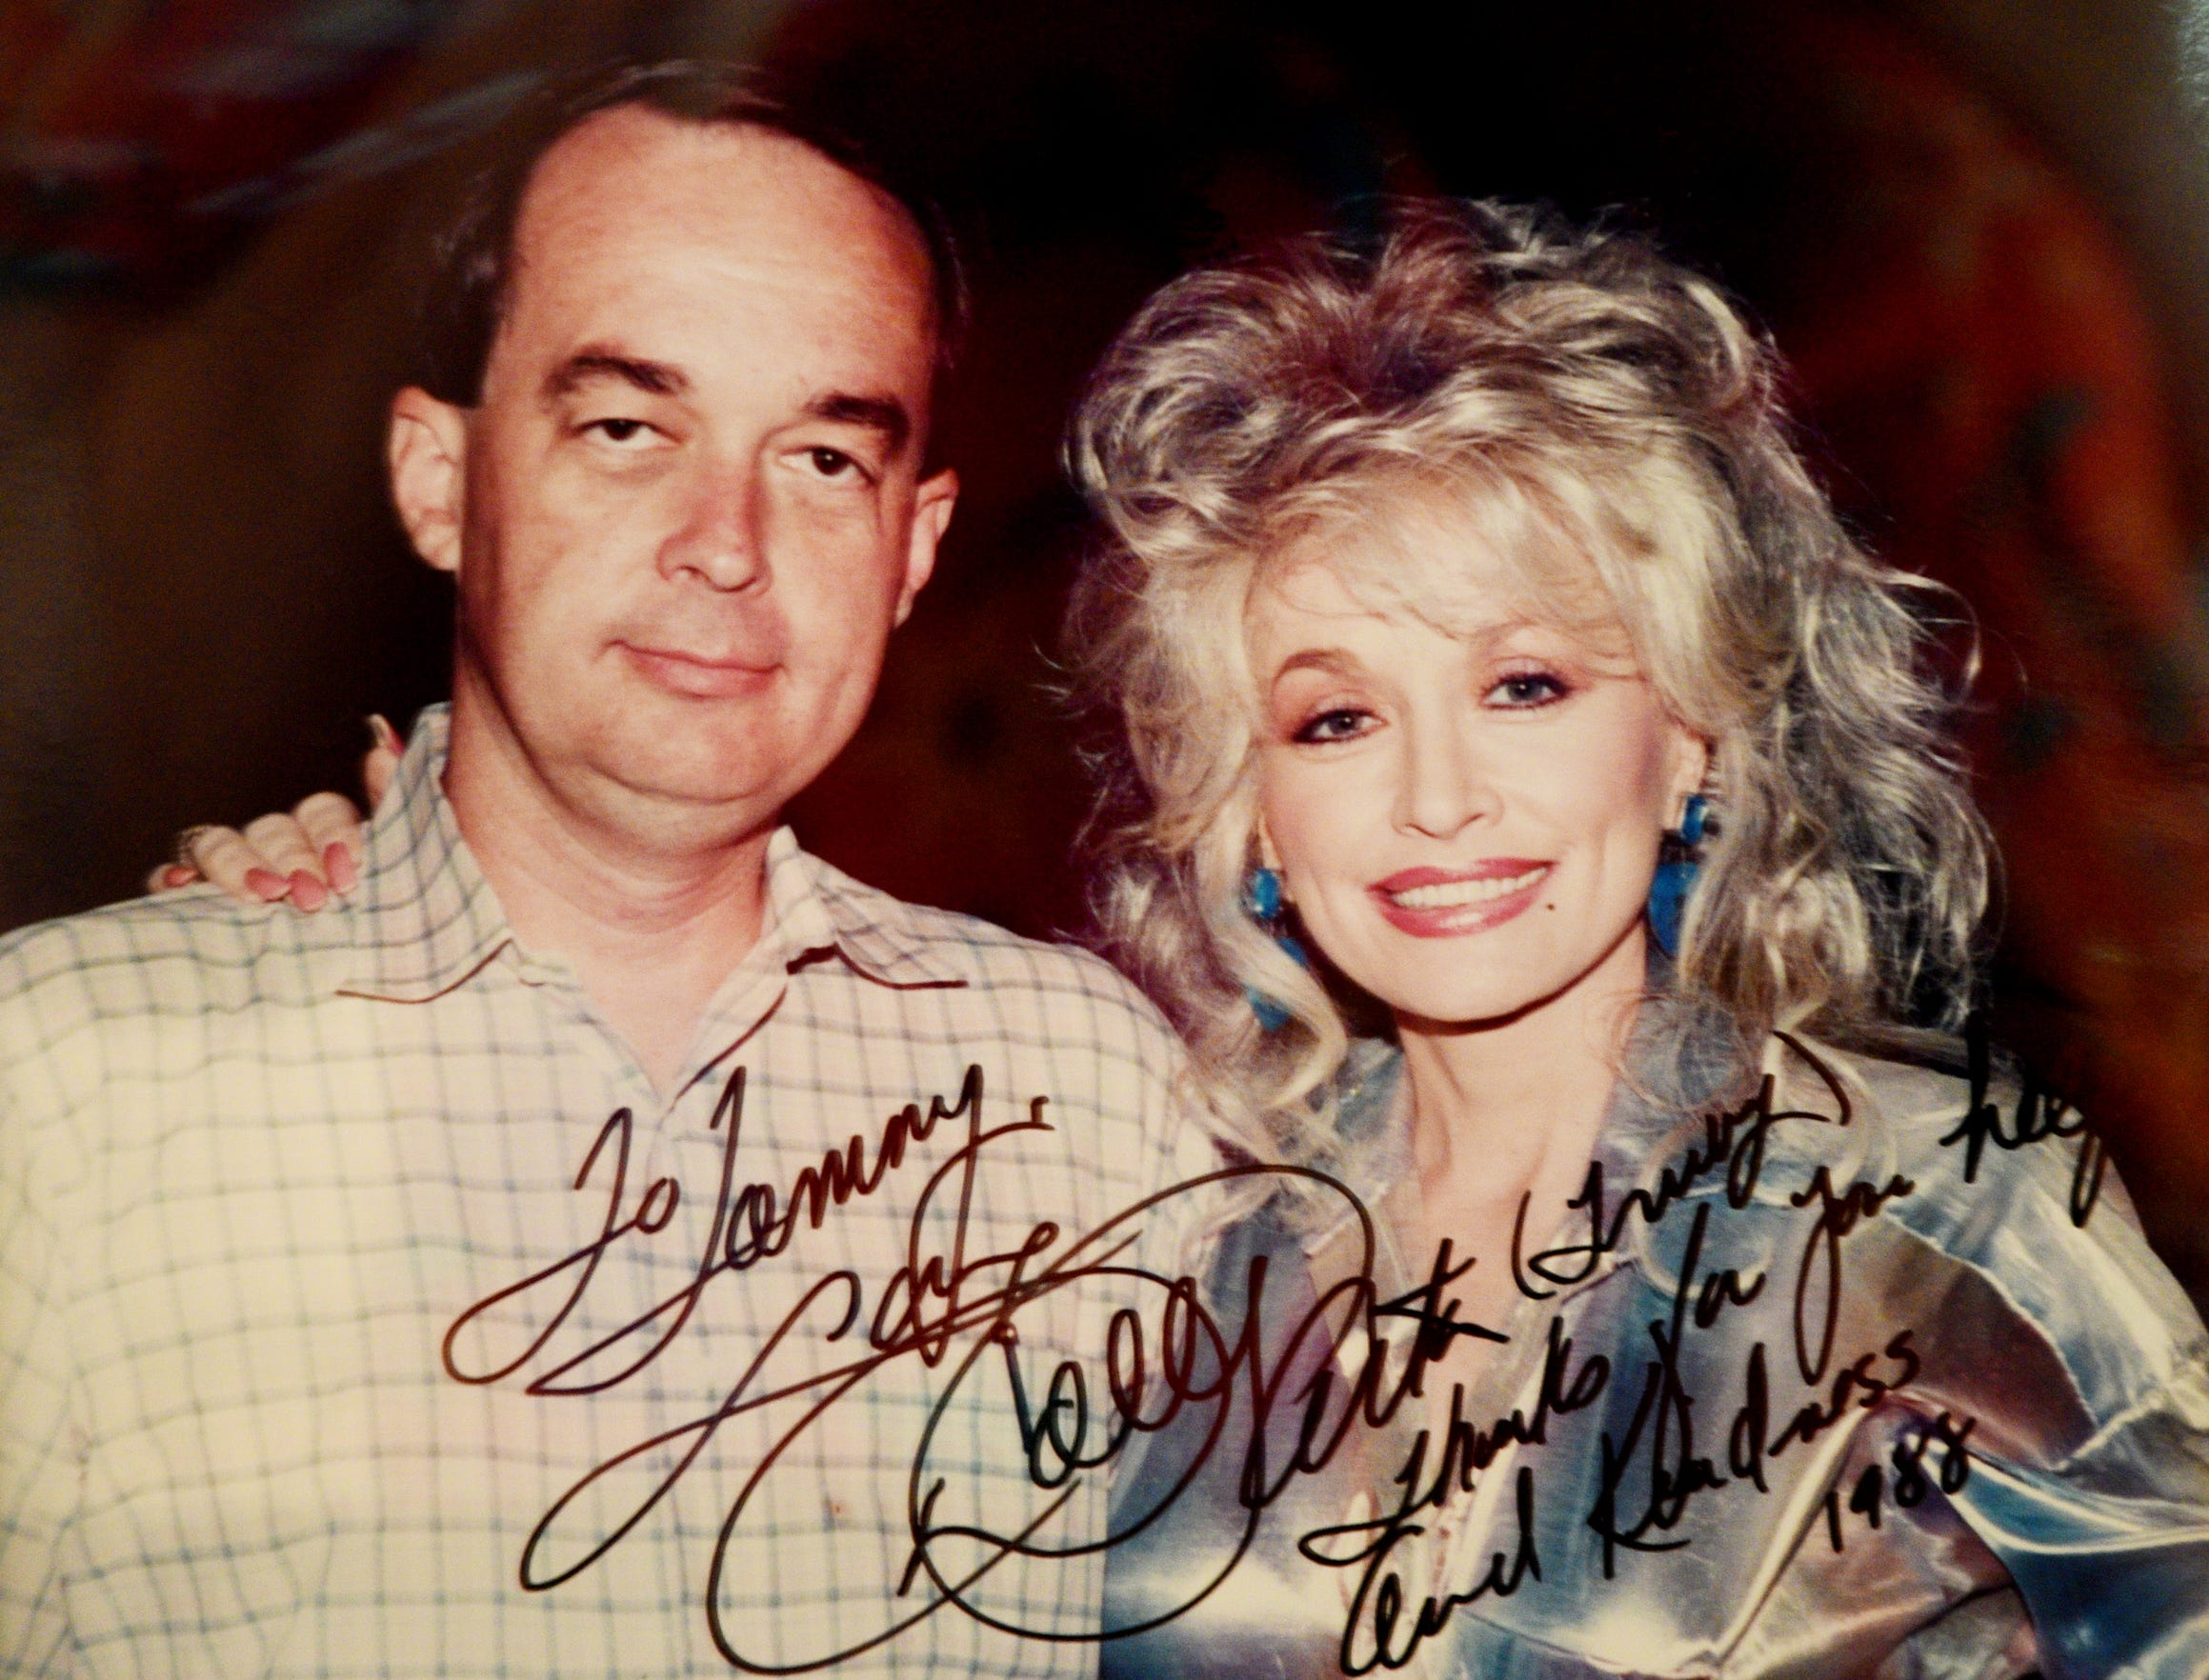 Tommy Whitehead's signed photo of the him and Dolly Parton when Steel Magnolias was filmed in Natchitoches.